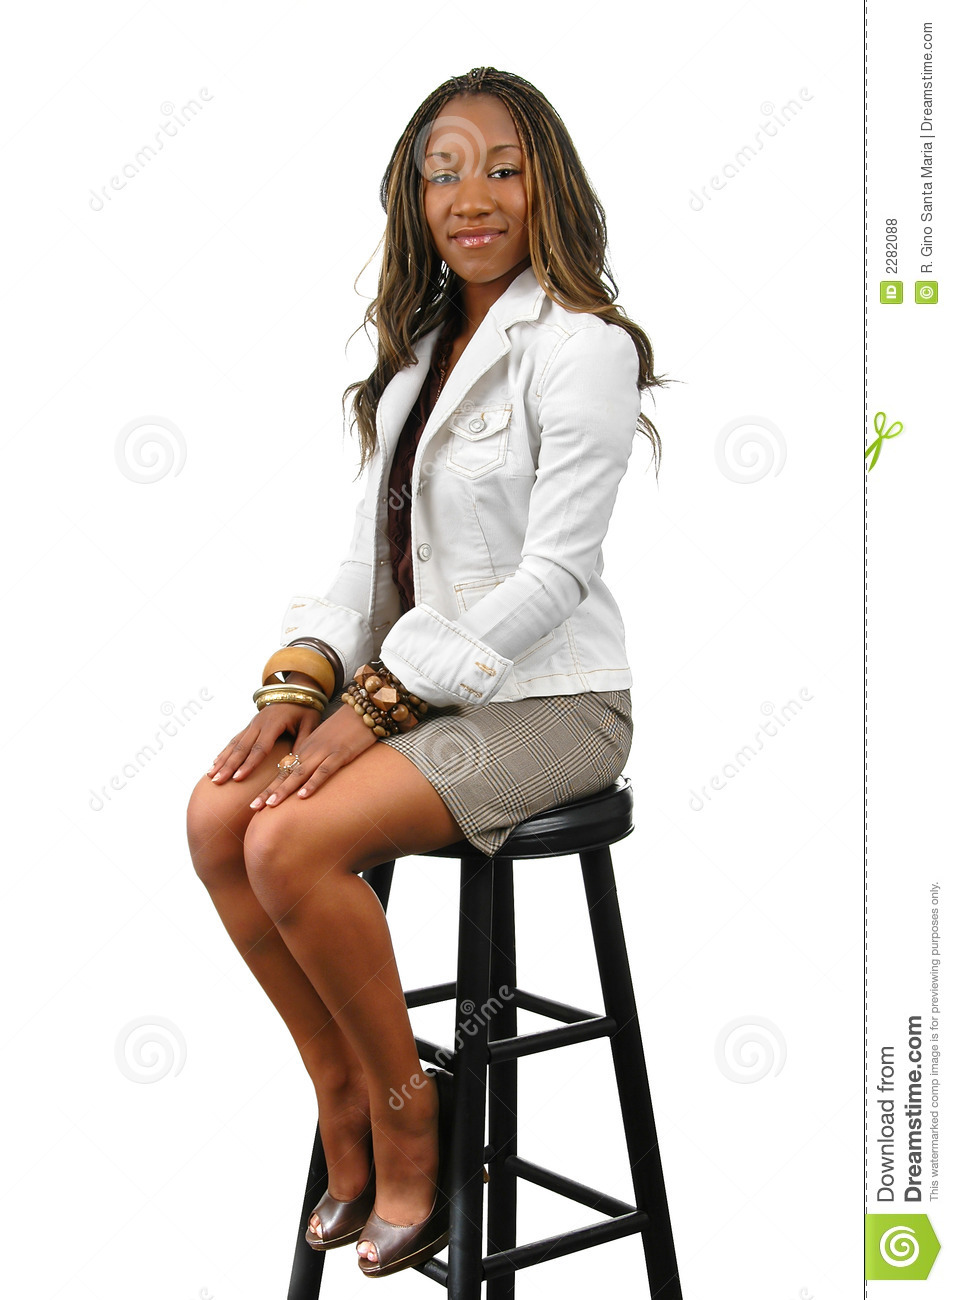 Woman Sitting Royalty Free Stock Photos Image 2282088 : woman sitting 2282088 from dreamstime.com size 954 x 1300 jpeg 202kB